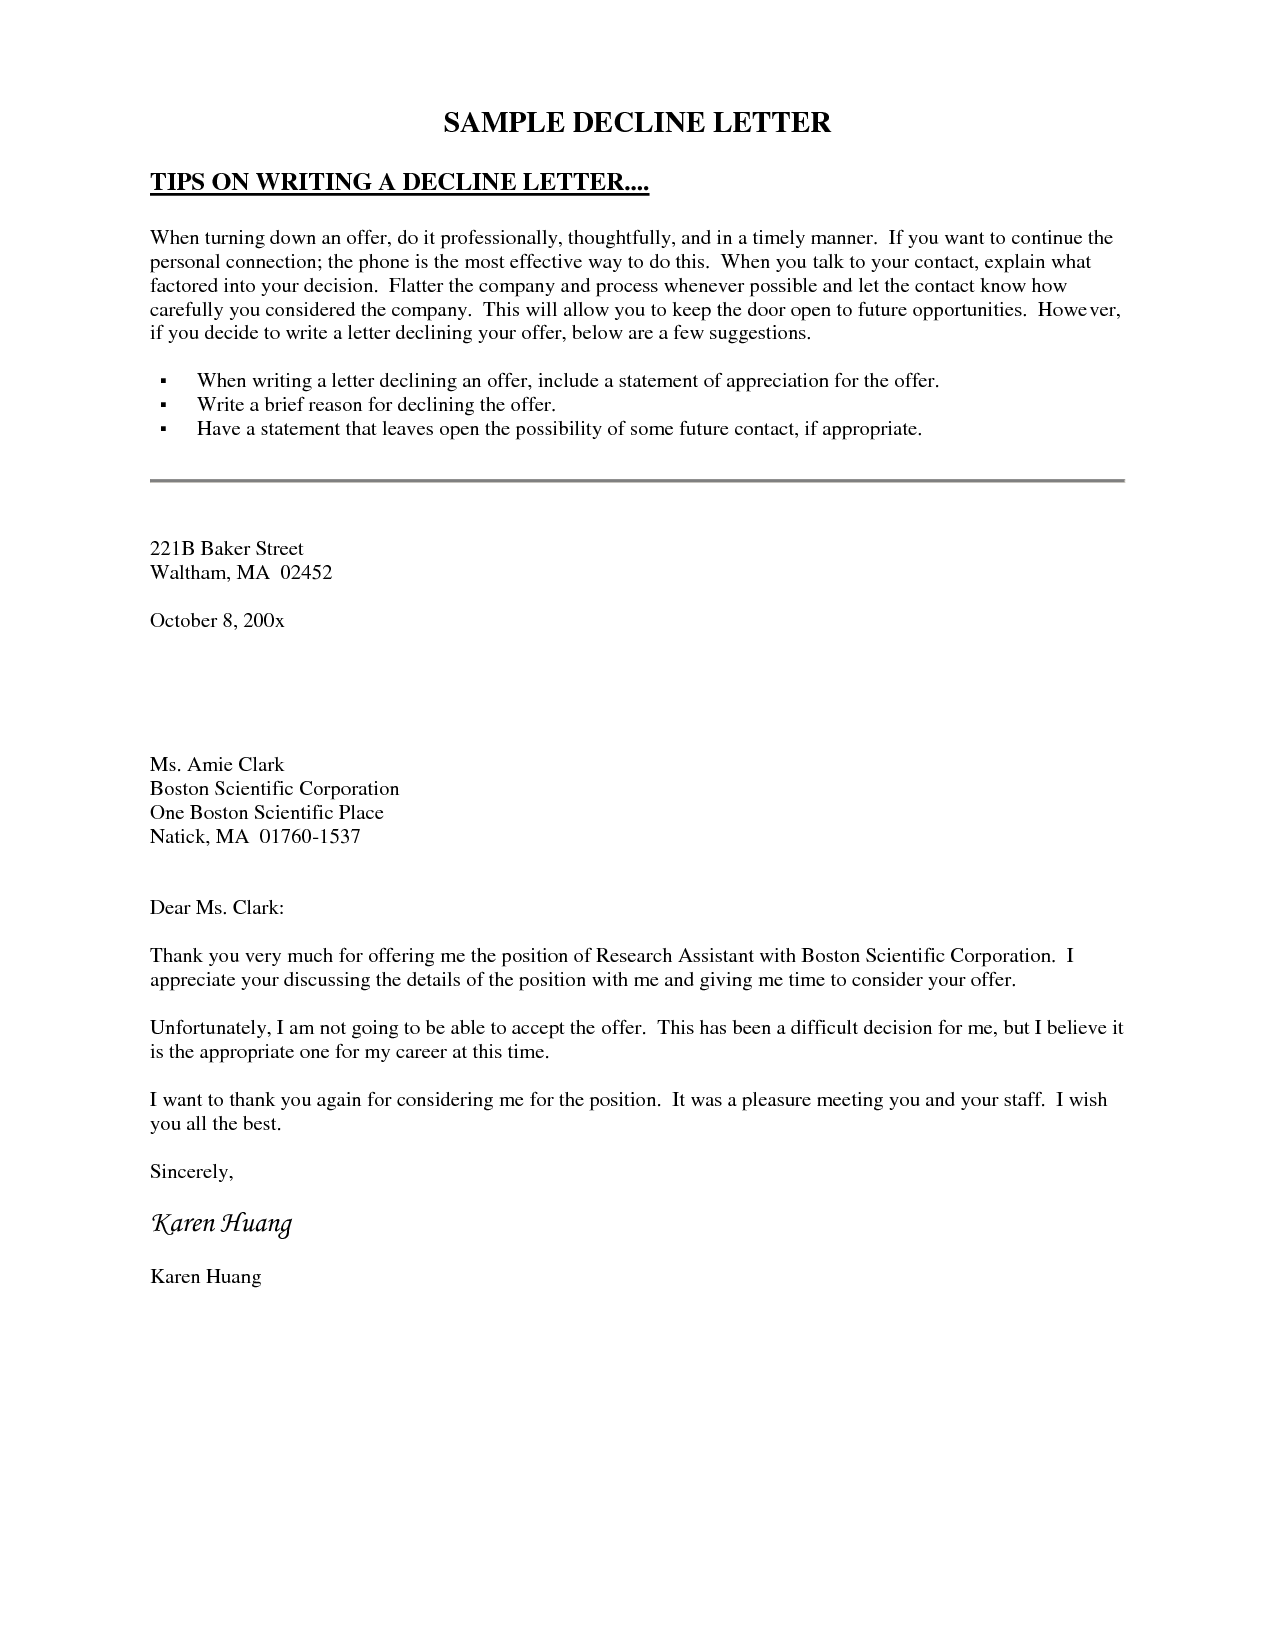 Harvard Letter Acceptance Resume College Board